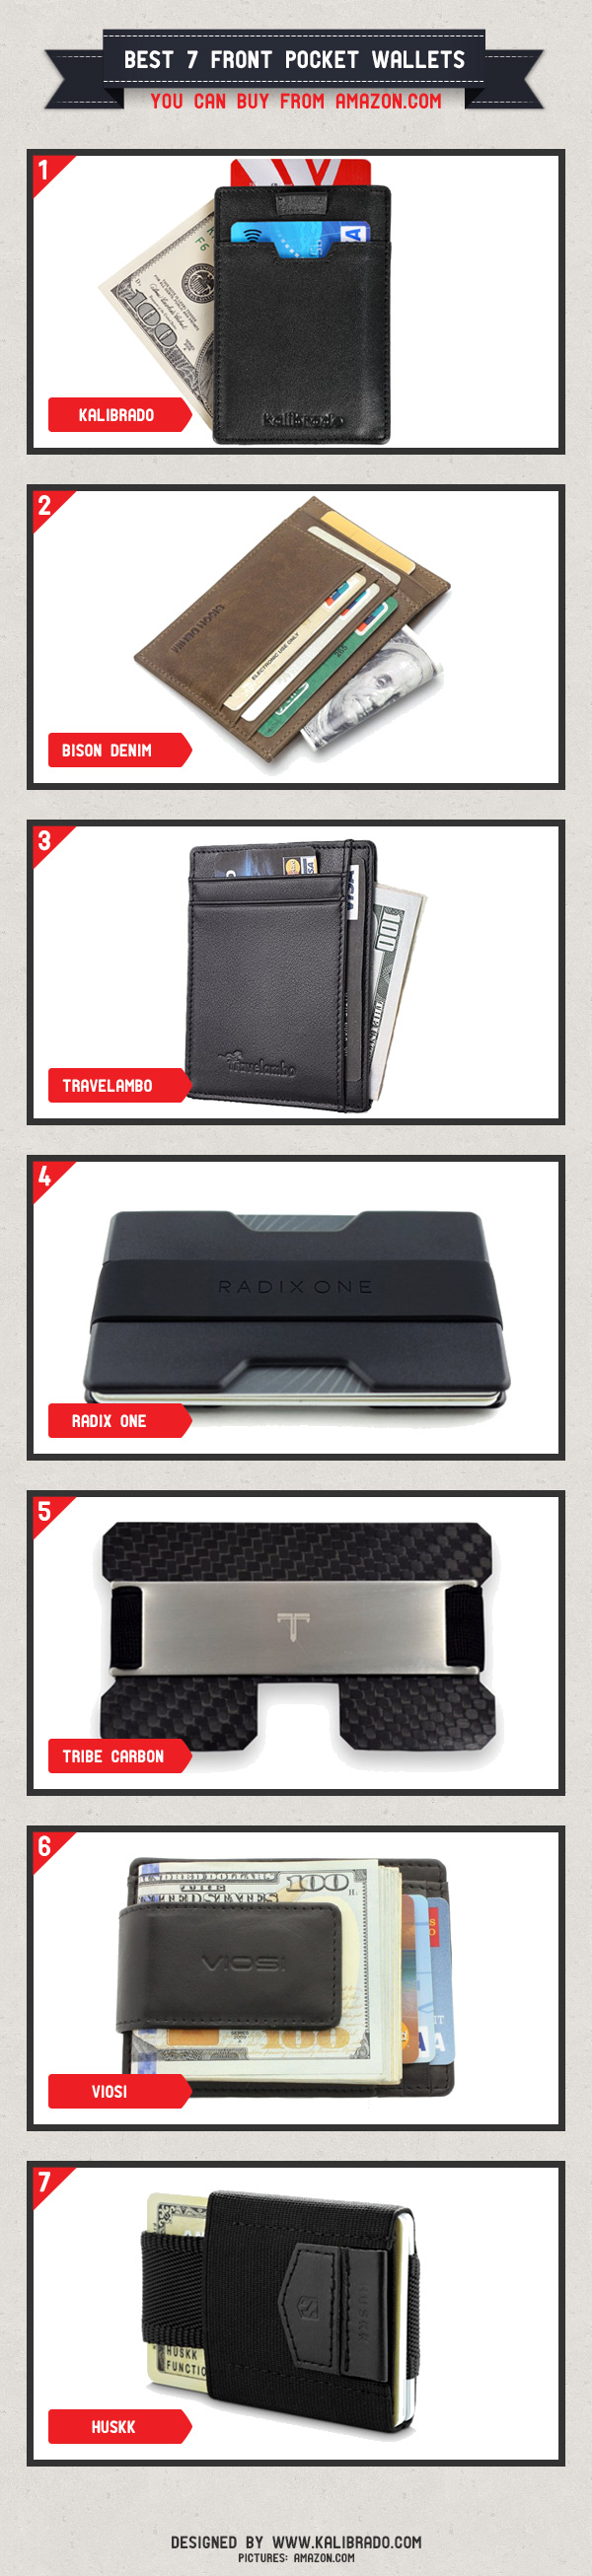 best-7-front-pocket-wallets-you-can-buy-ffrom-amazon